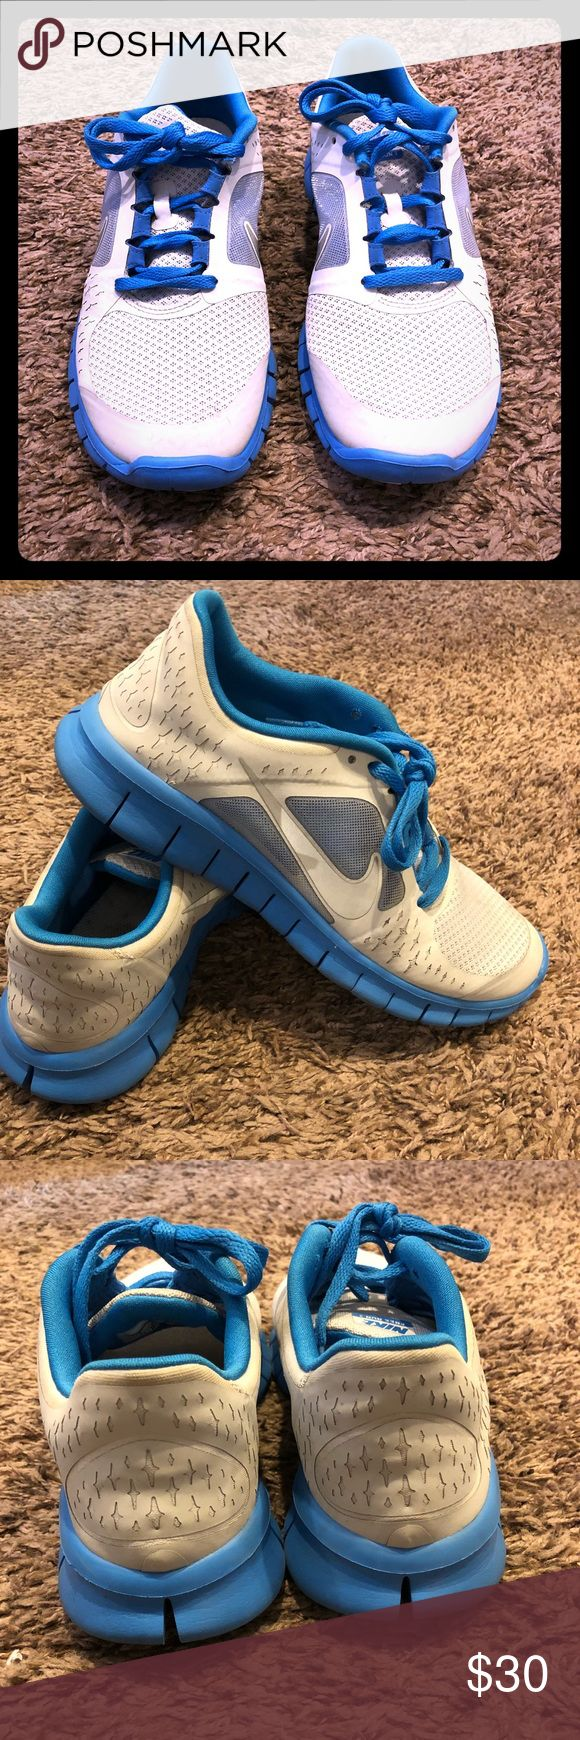 Nike Run 3 Youth Shoes Gray/Blue 7Y Slightly worn Size US 7 Youth. Please note that colors may slightly very due to the settings of your electronic device. Please ask questions before purchasing. Nike Shoes Sneakers